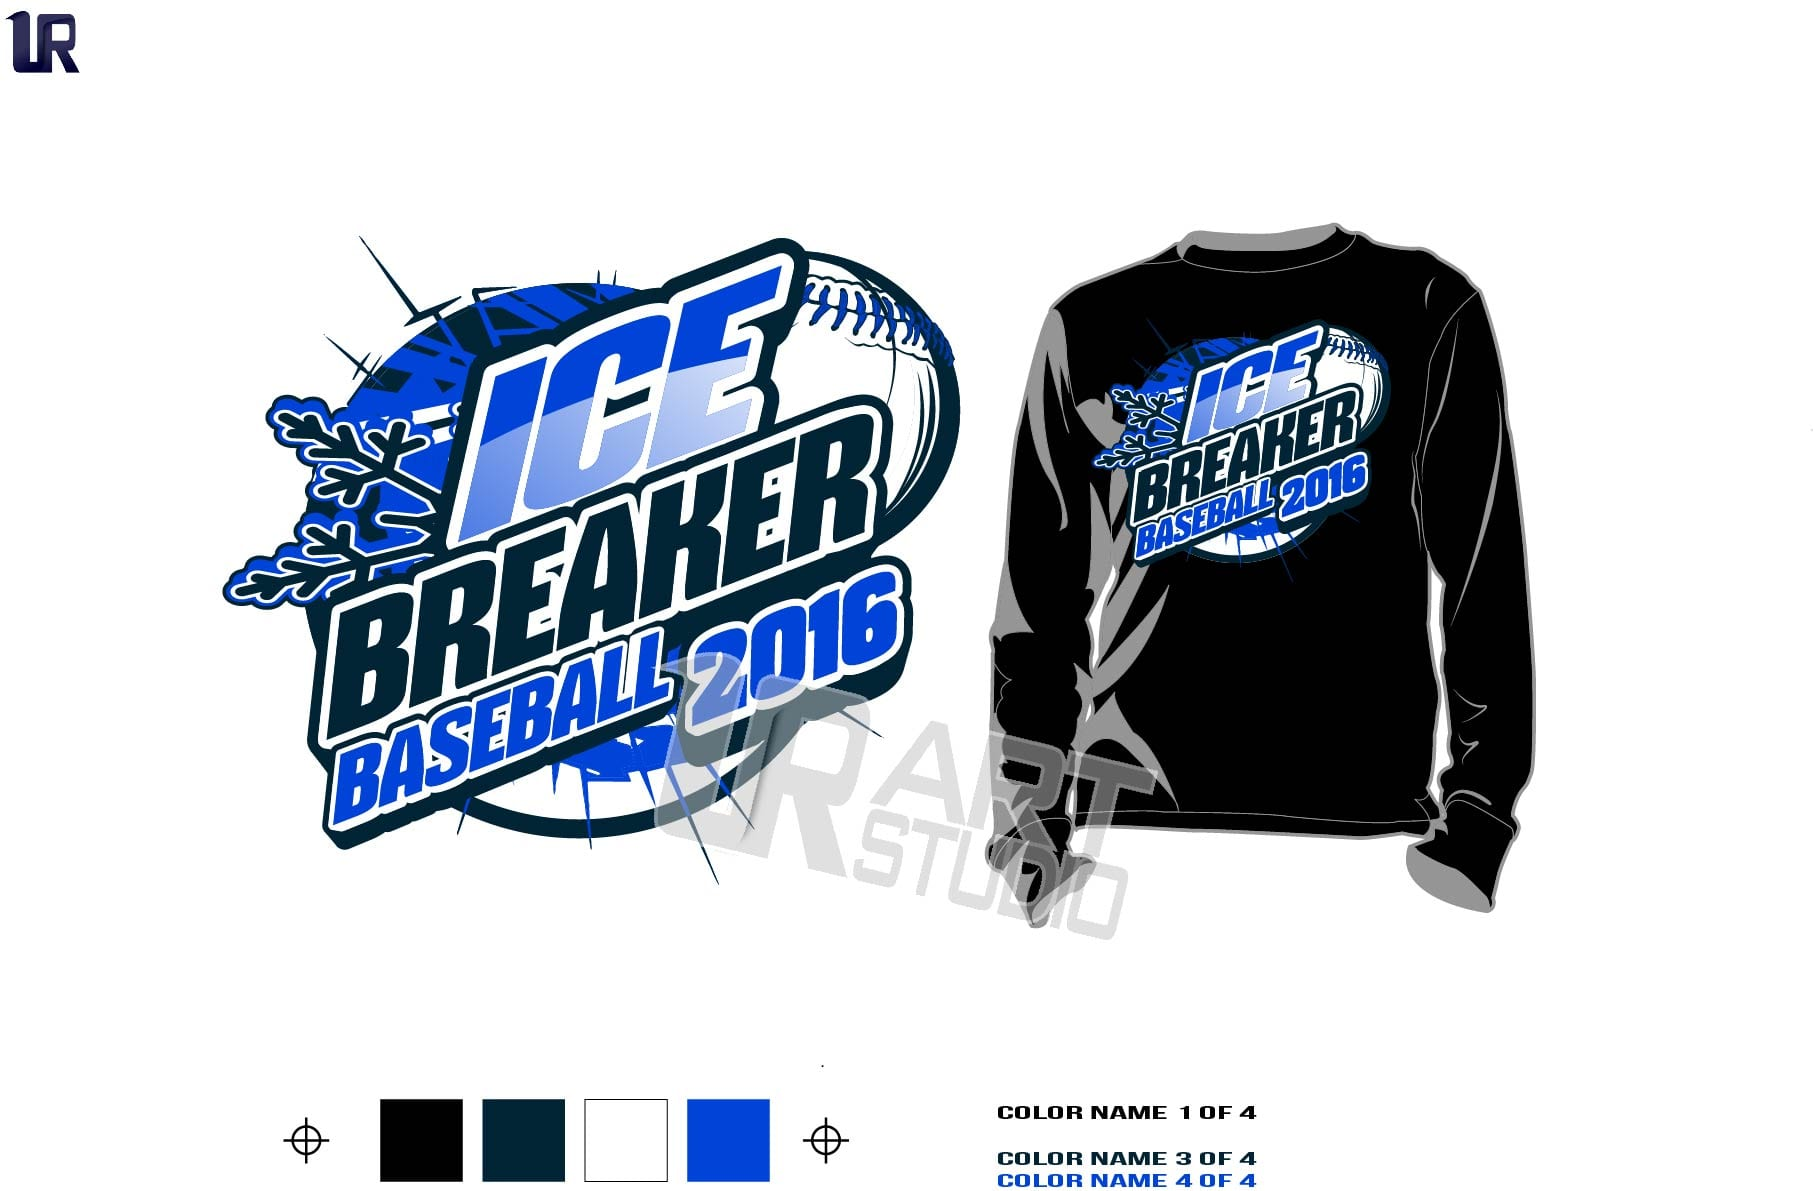 Design t shirt baseball - Download Awesome Ice Breaker Baseball Tshirt Vector Logo Design Color Separated 4 Spot Colors For Tshirt Screen Print